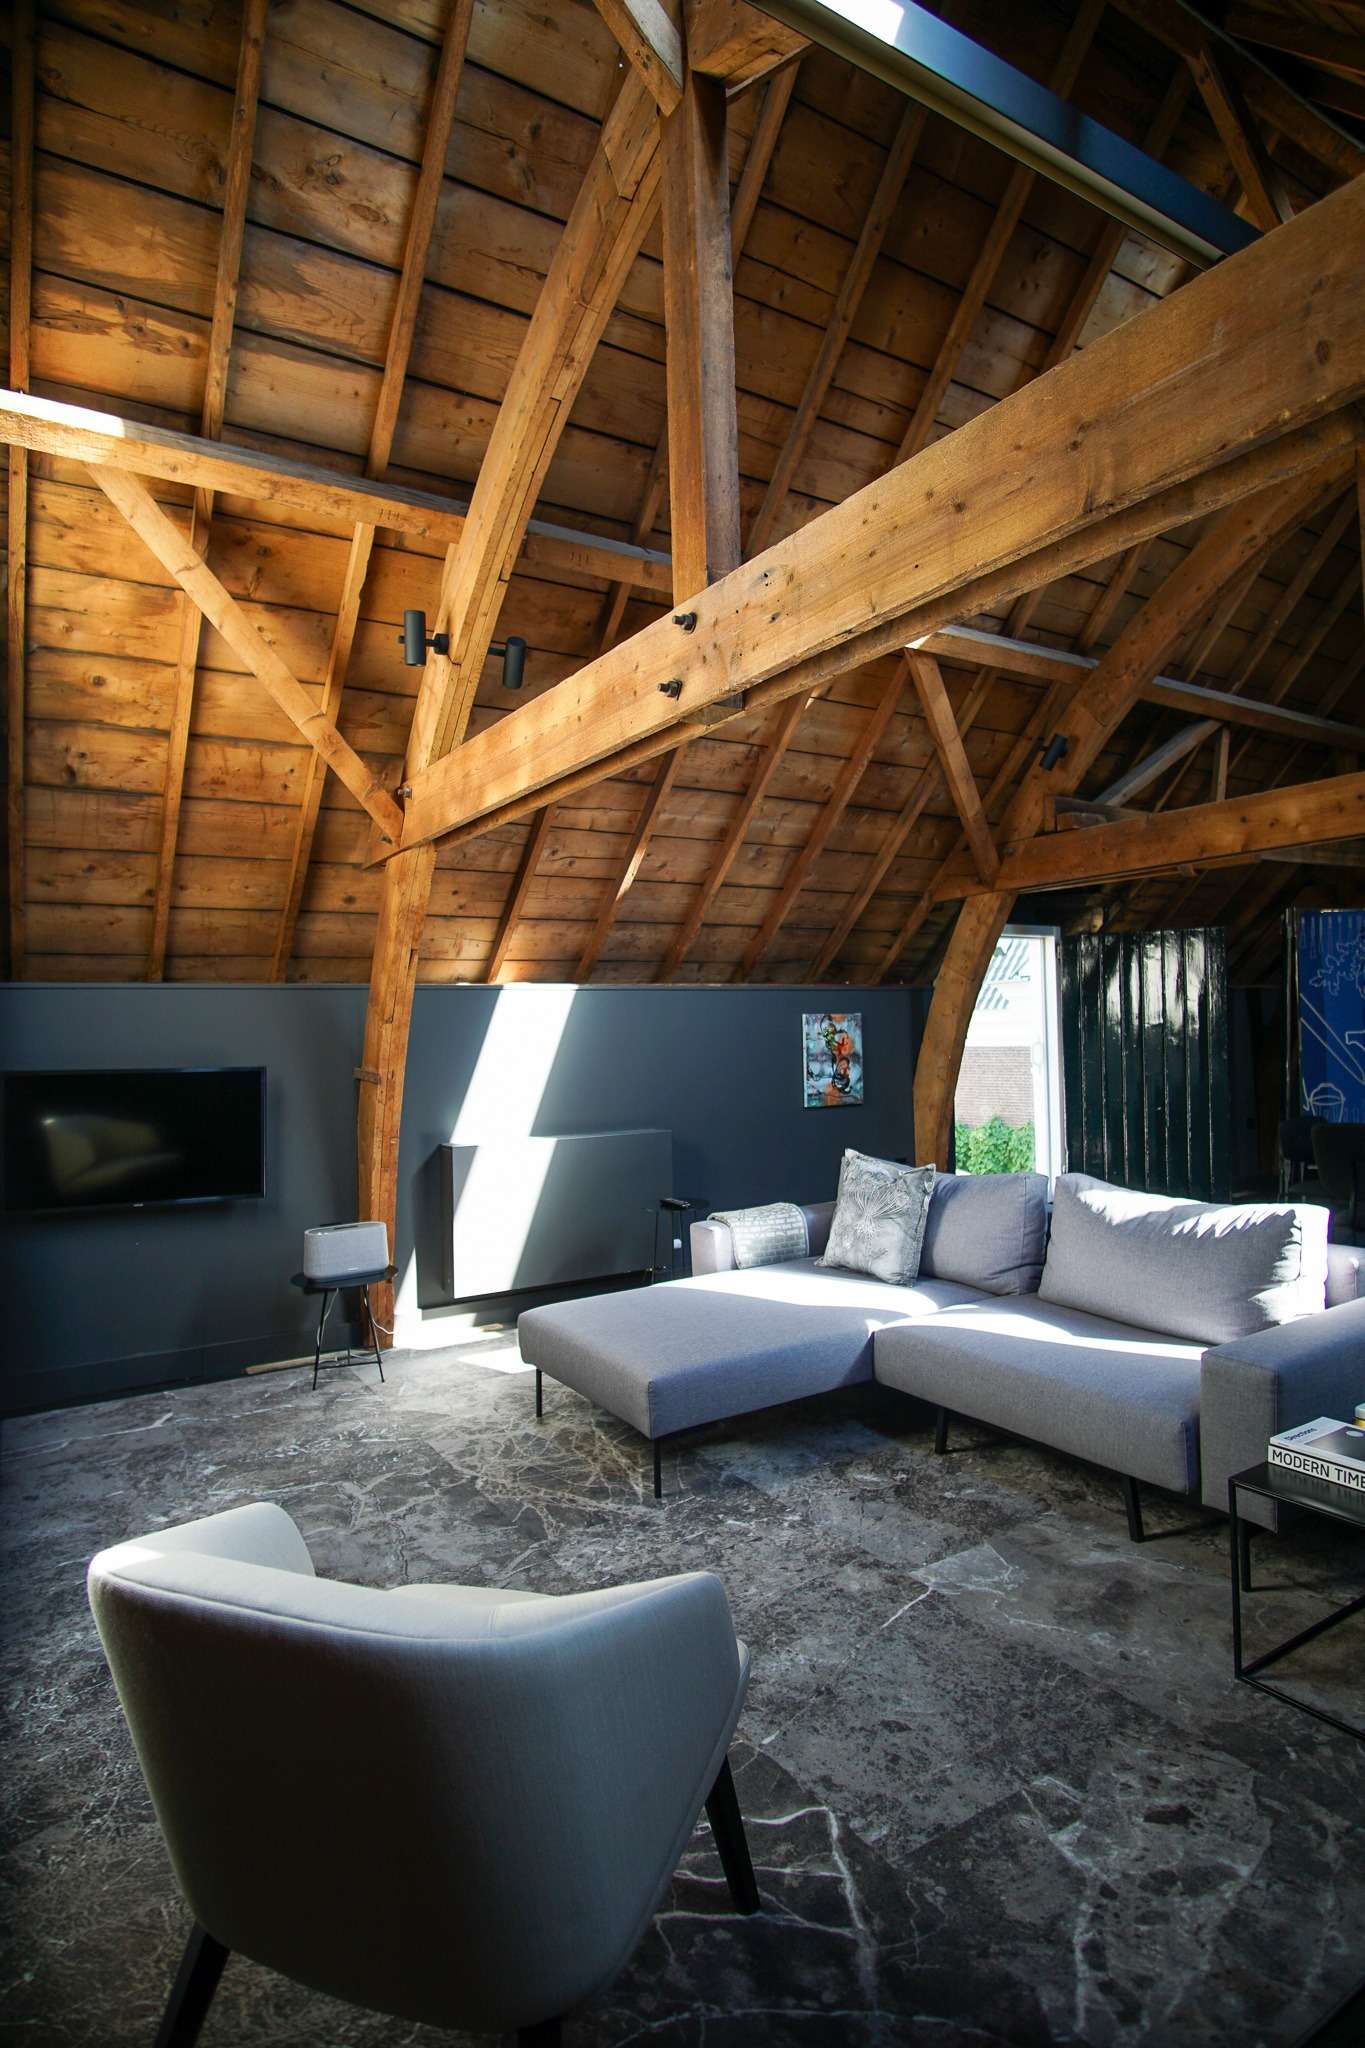 Wooden beams in a loft with large grey sofa at Kazerne Hotel in Eindhoven